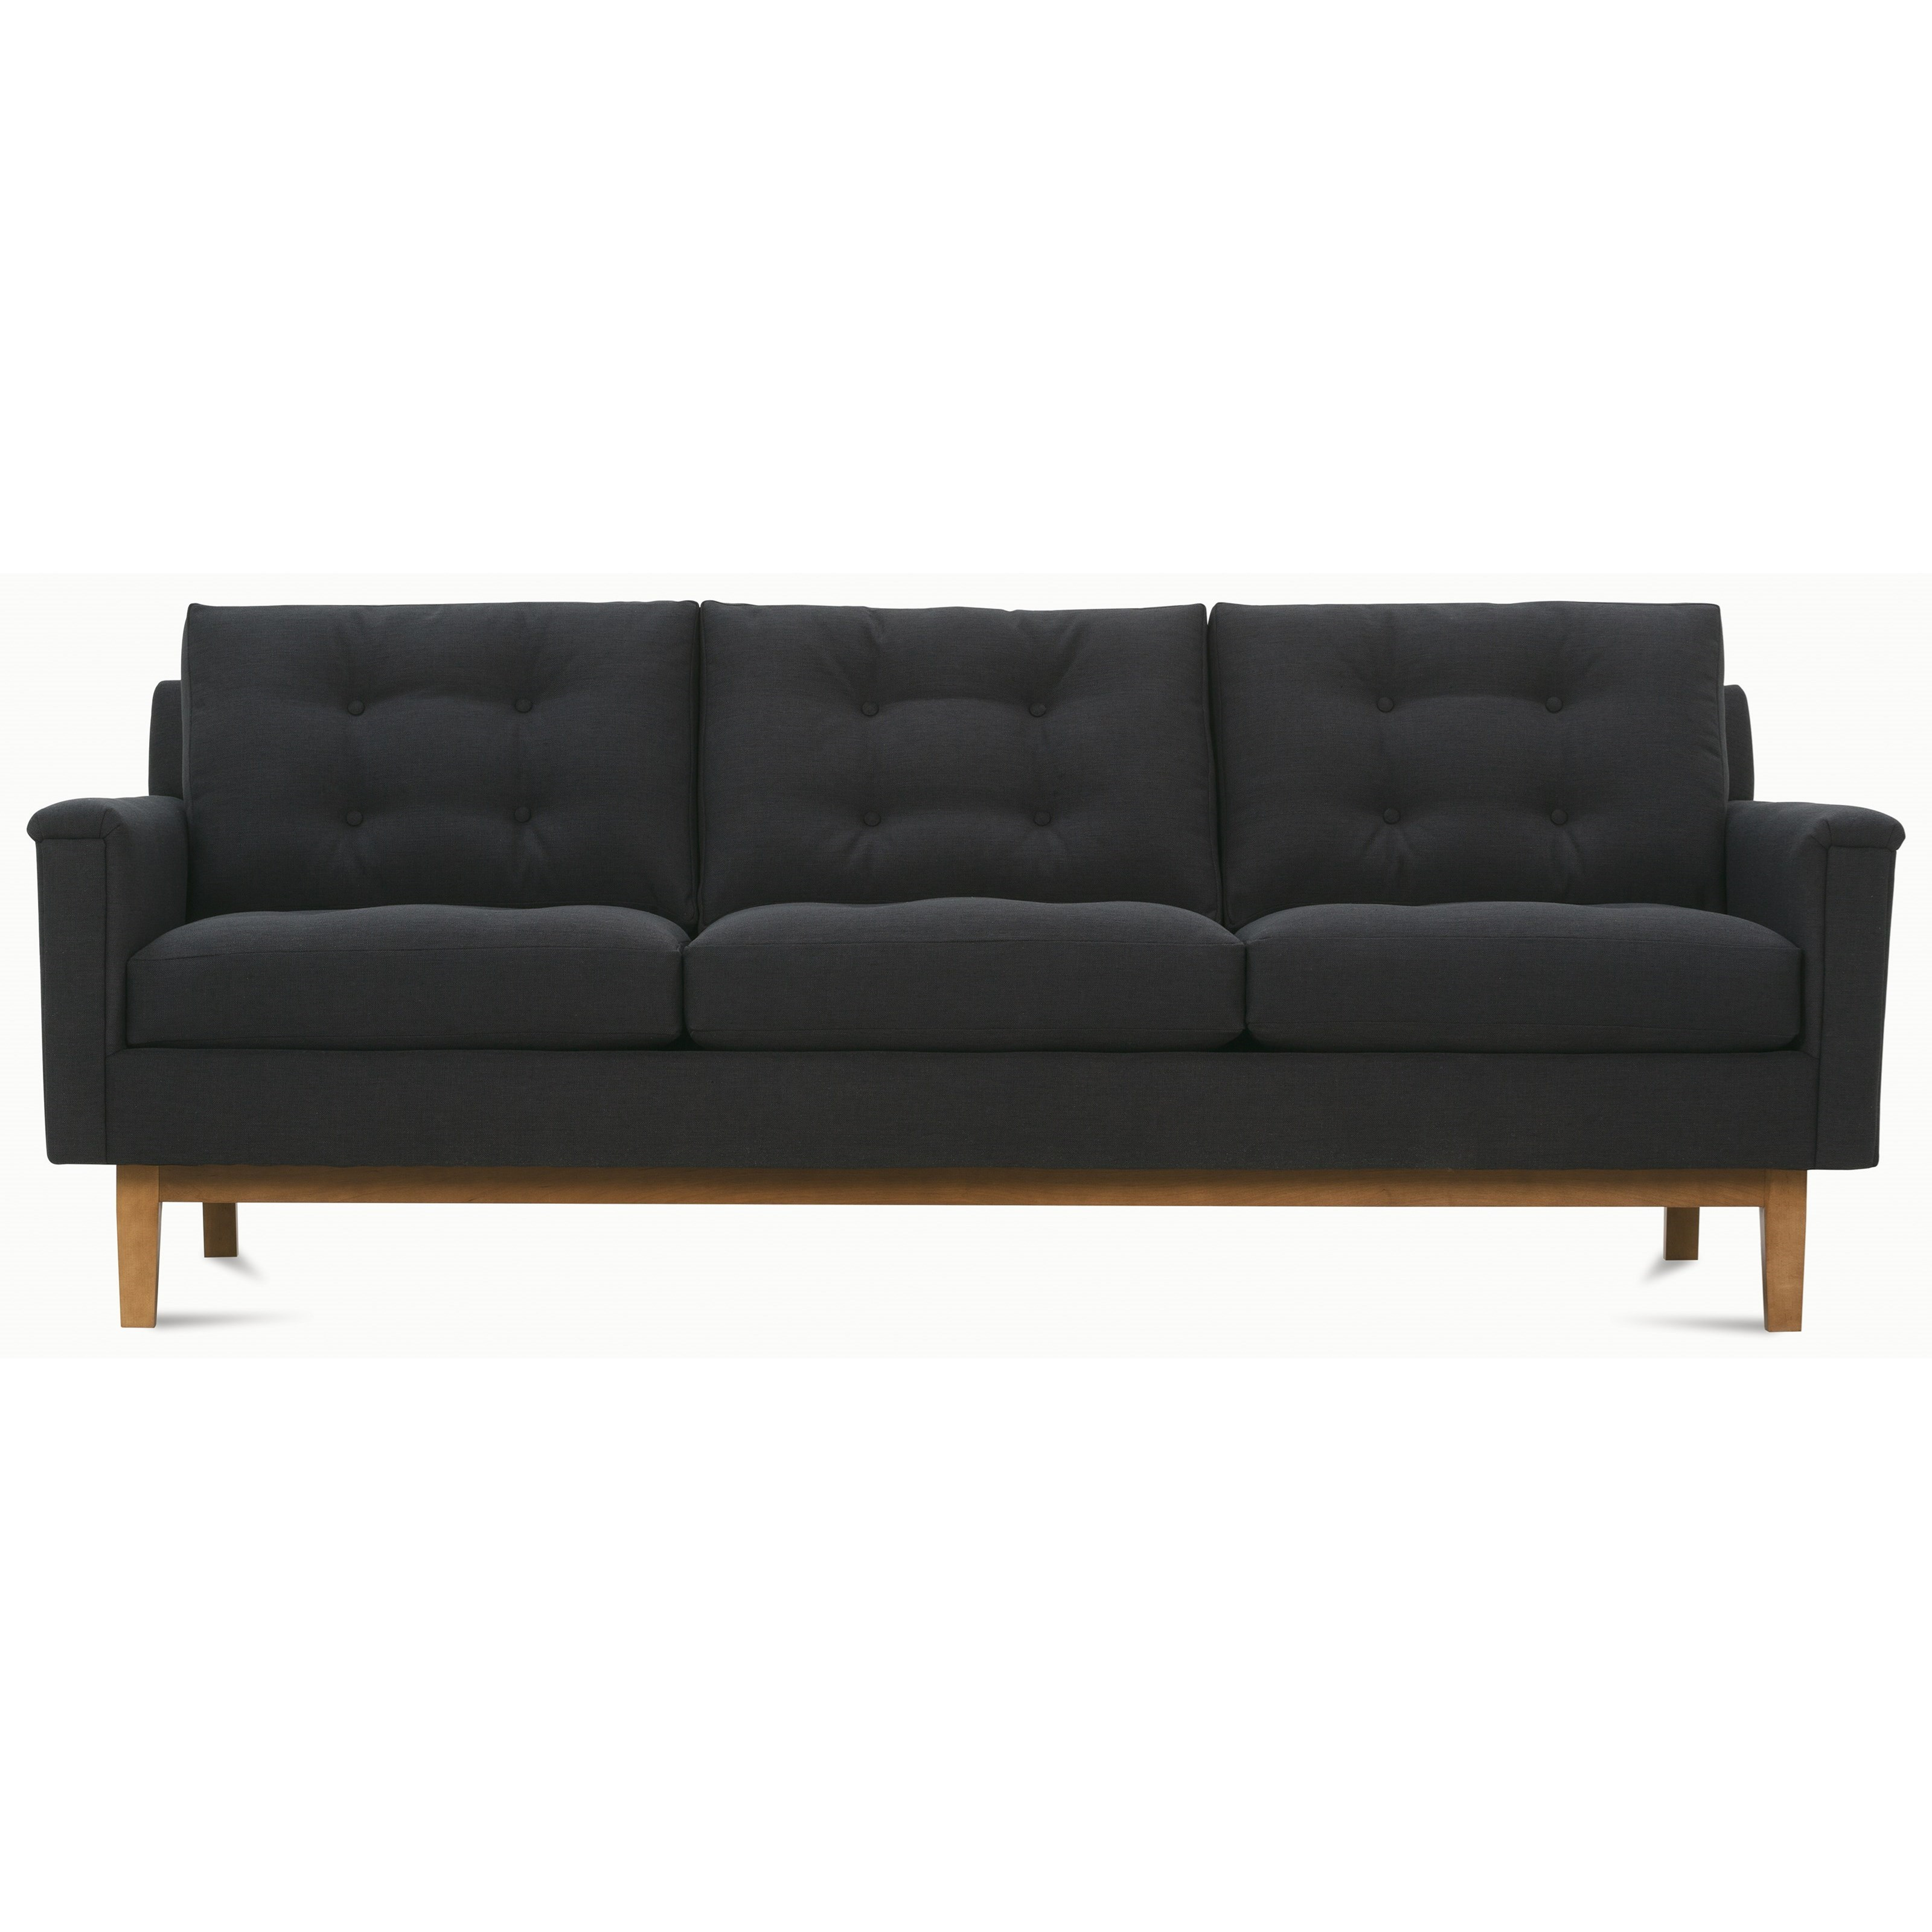 modern pillows for sofas gray pit sectional sofa rowe ethan mid century with tufted back